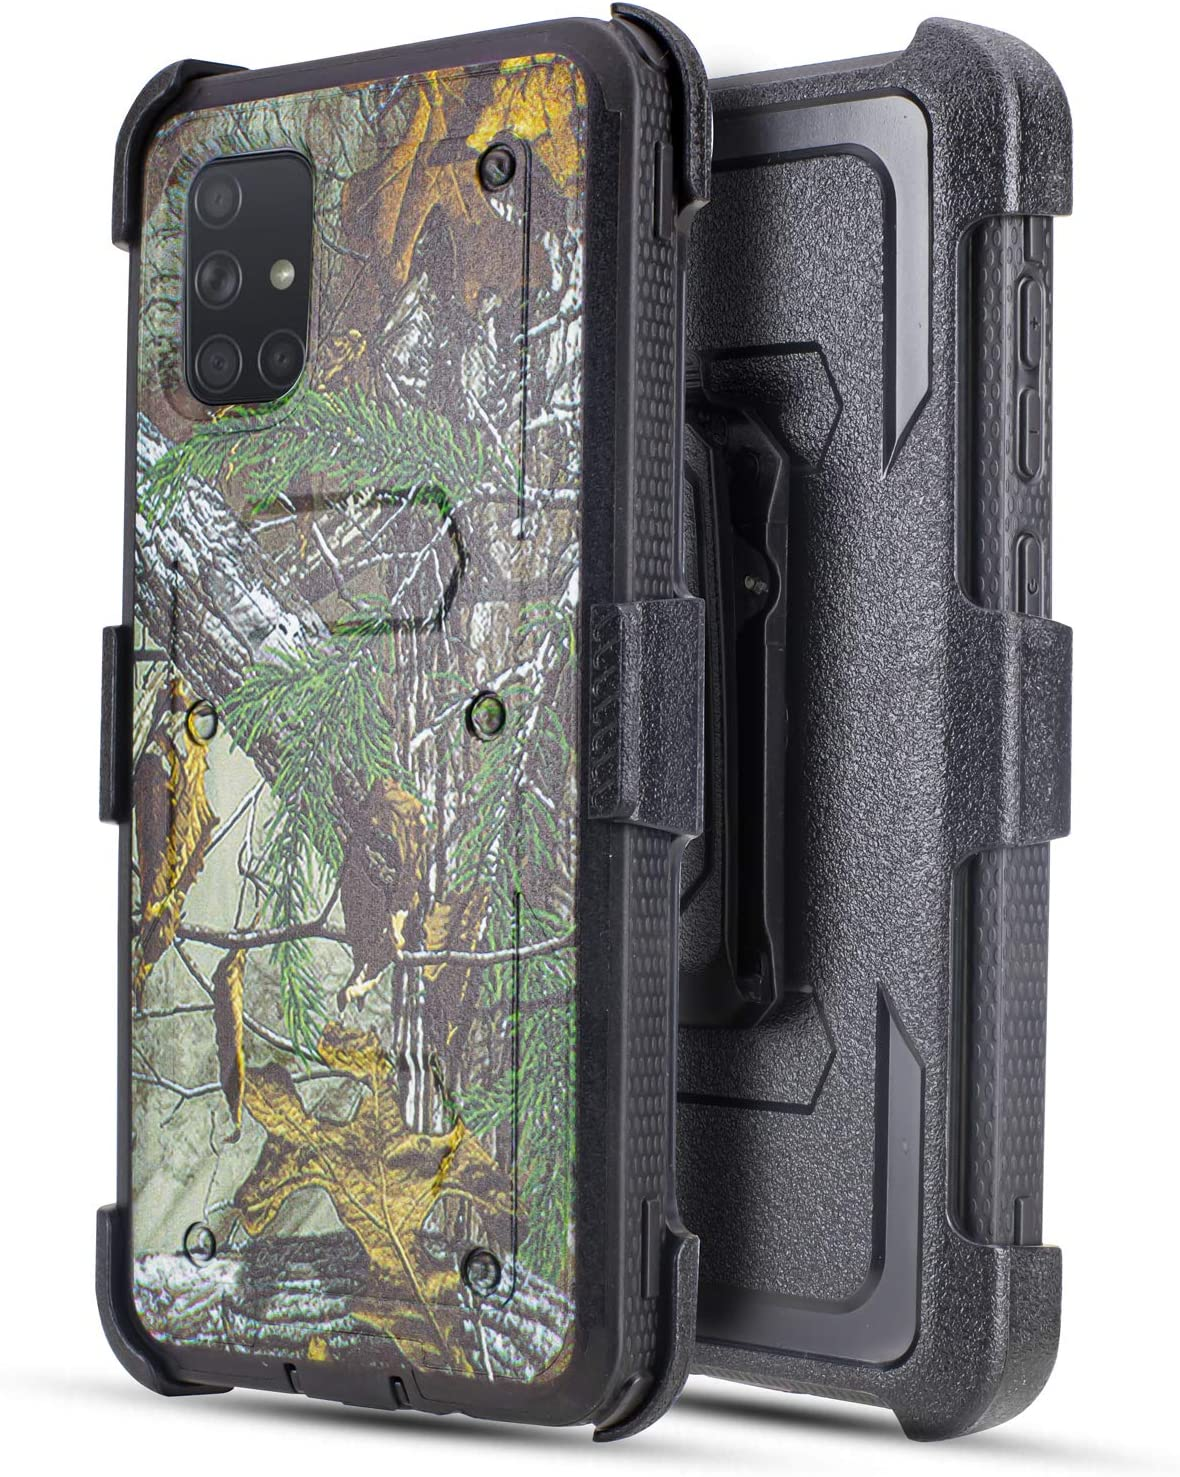 Customerfirst Samsung Galaxy A51 Case (Does NOT FIT A50) Built-in [Screen Protector] Heavy Duty Holster Cover [Belt Clip][Kickstand] (Camo)